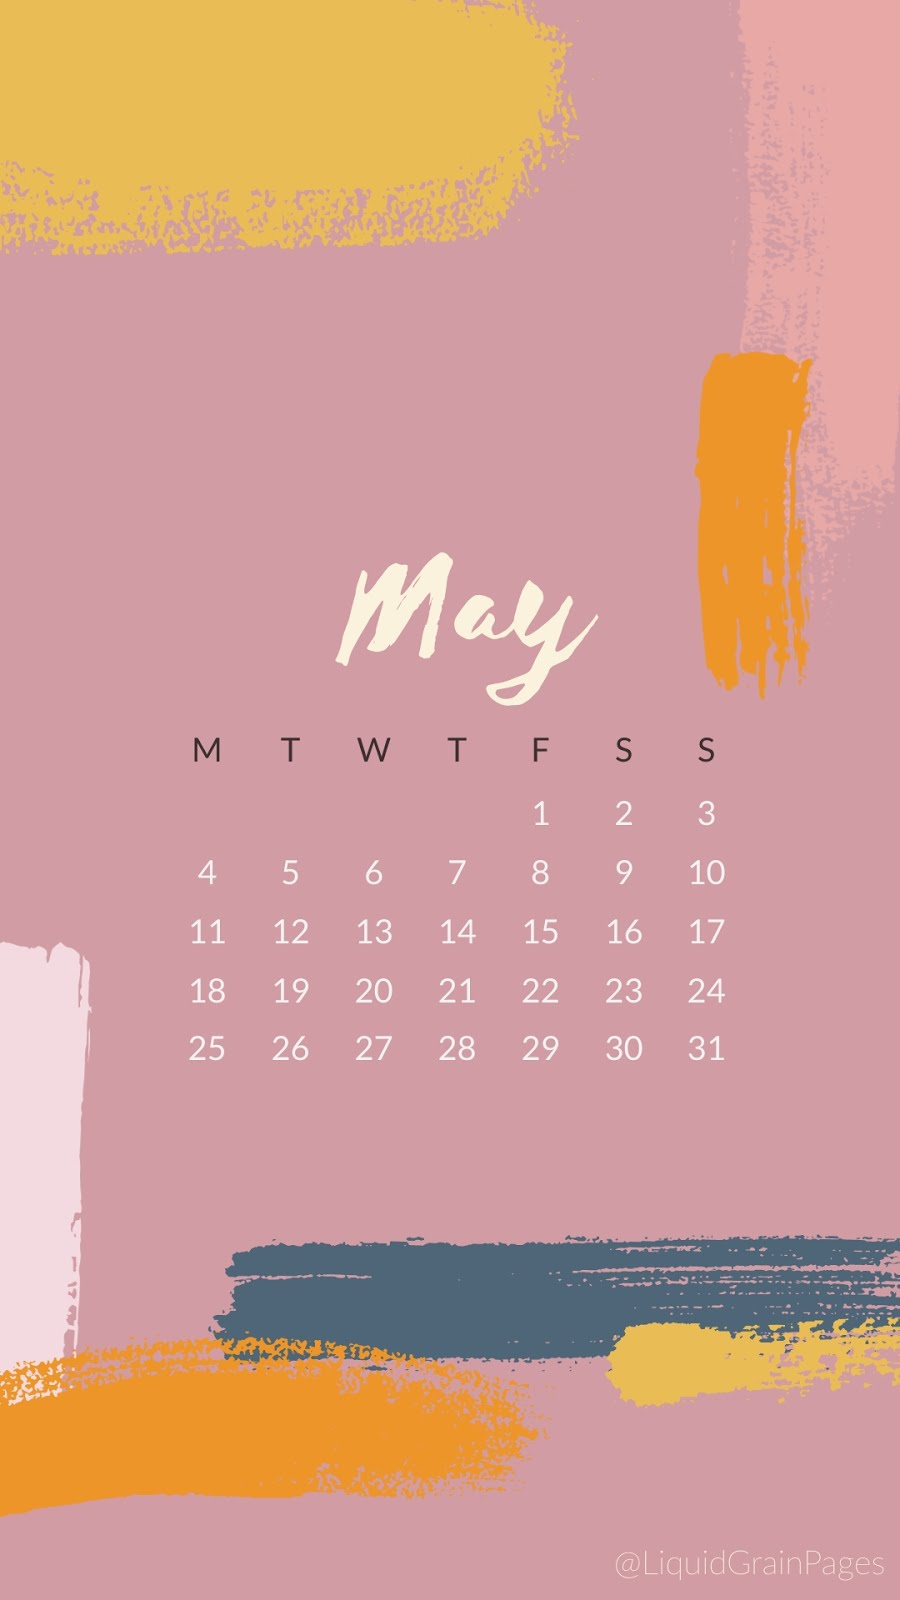 FREE PHONE BACKGROUNDS - 2020 May CALENDAR LIQUID GRAIN PAGES